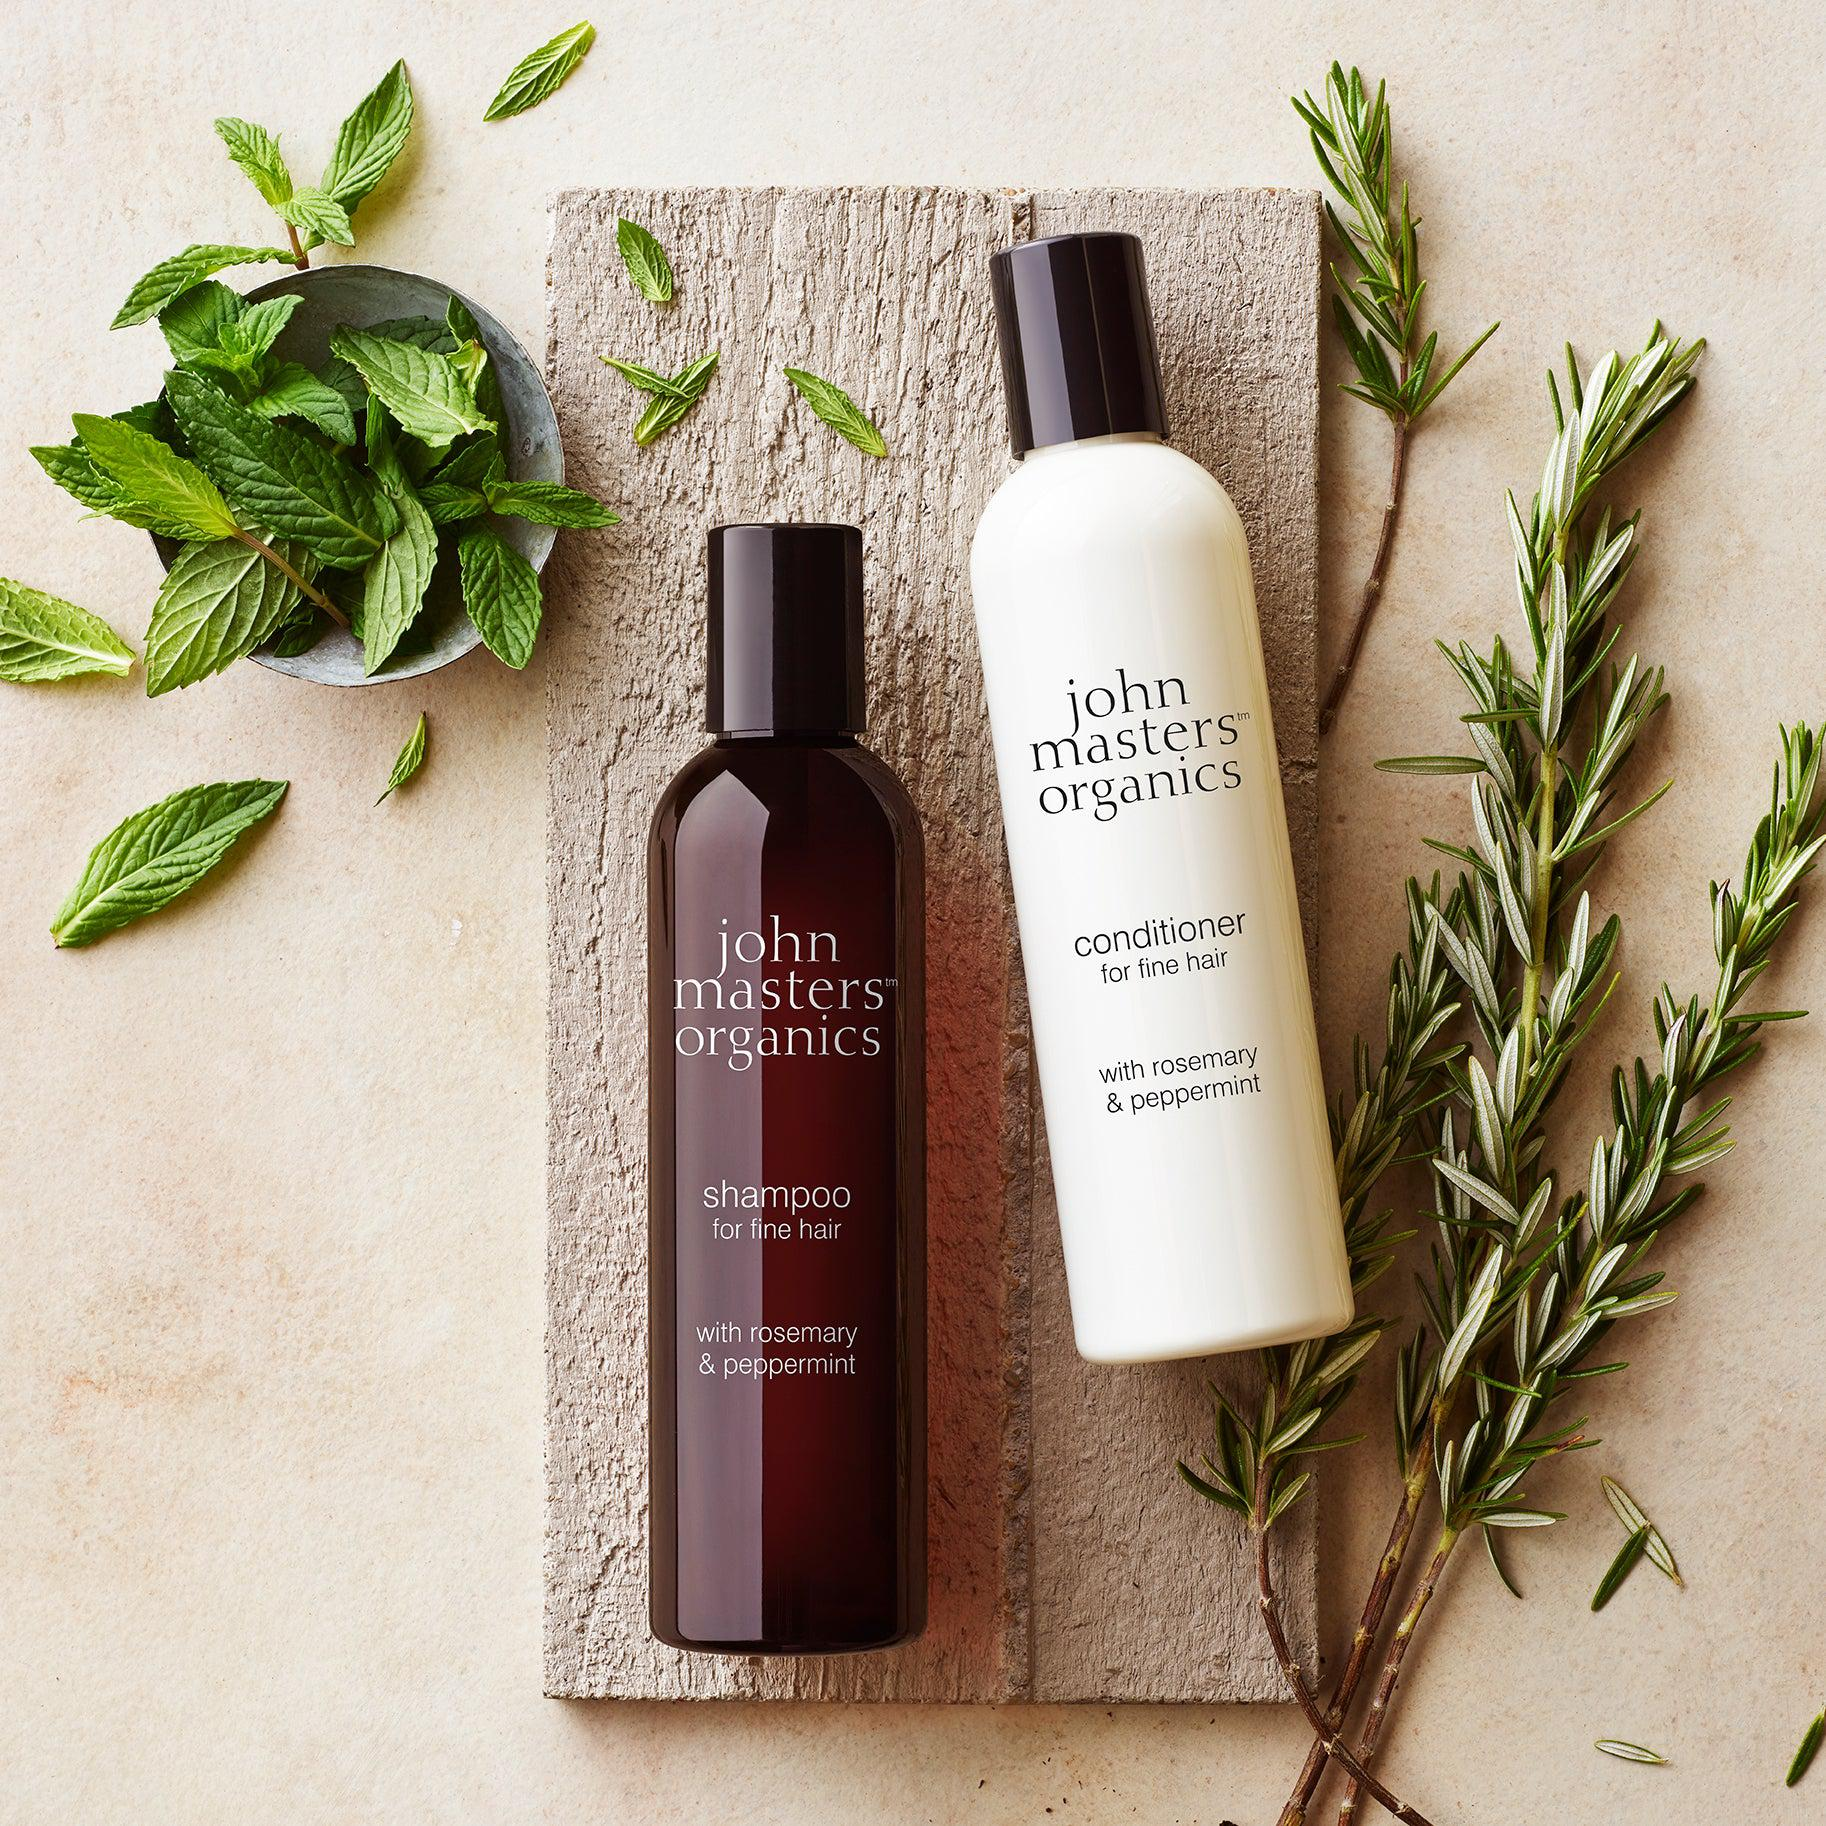 Conditioner for Fine Hair - Rosemary & Peppermint